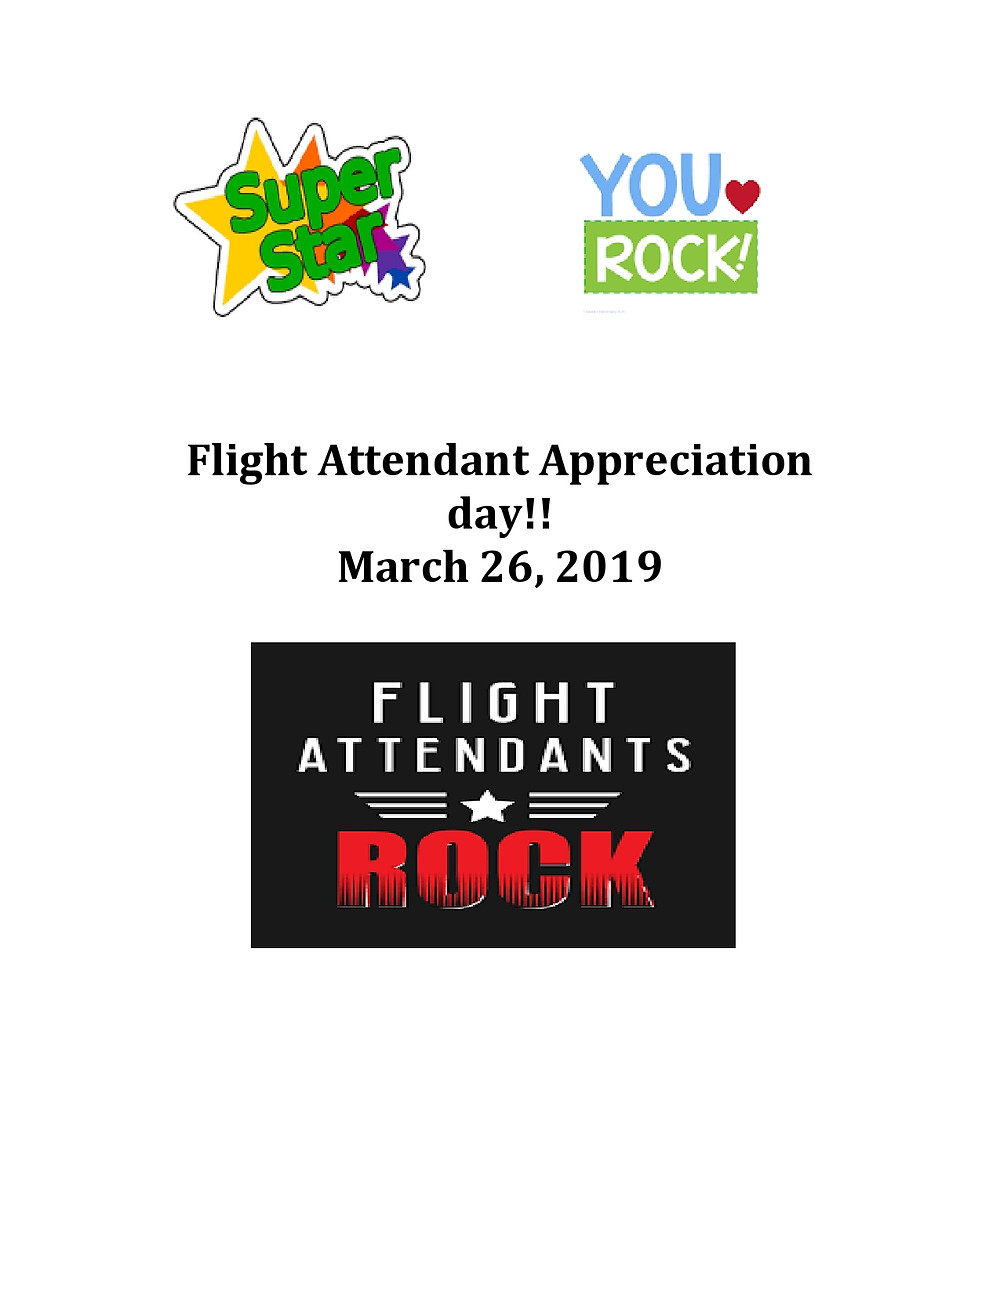 NEWARK FA FLIGHT ATTENDANT APPRECIATION DAY